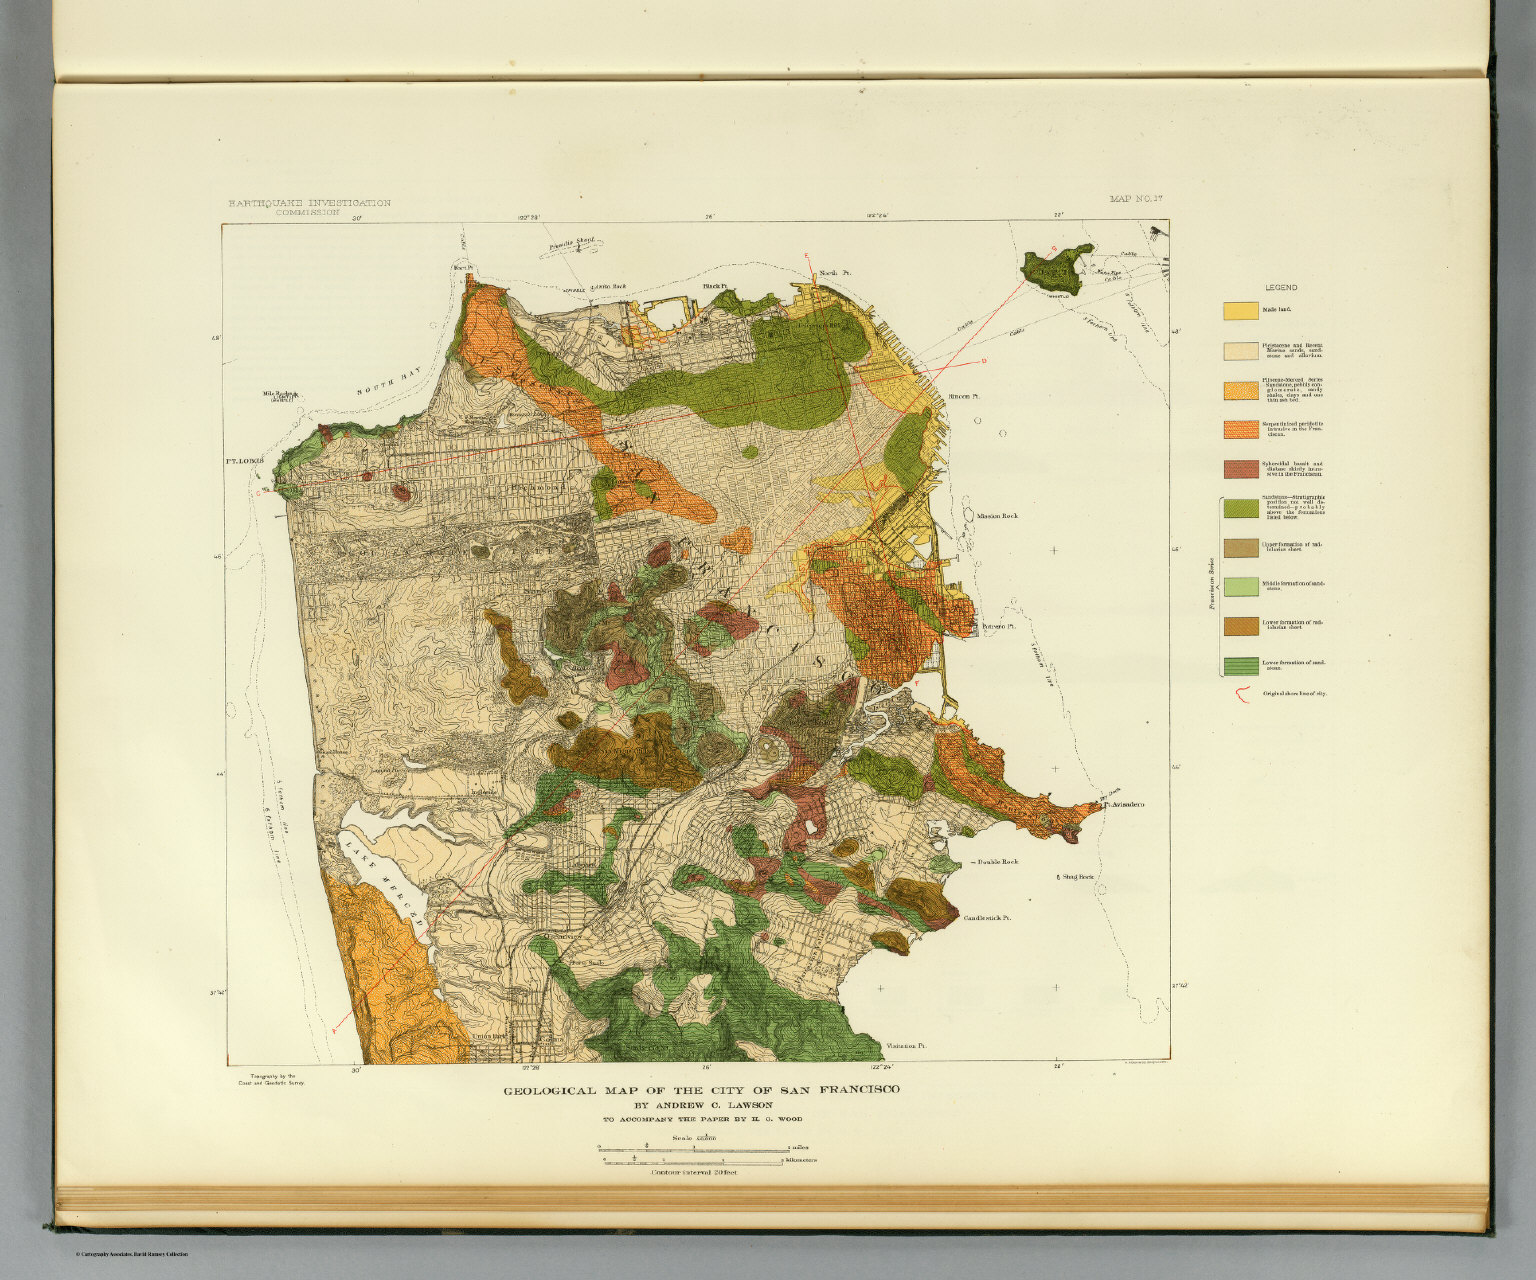 Geological map San Francisco David Rumsey Historical Map Collection